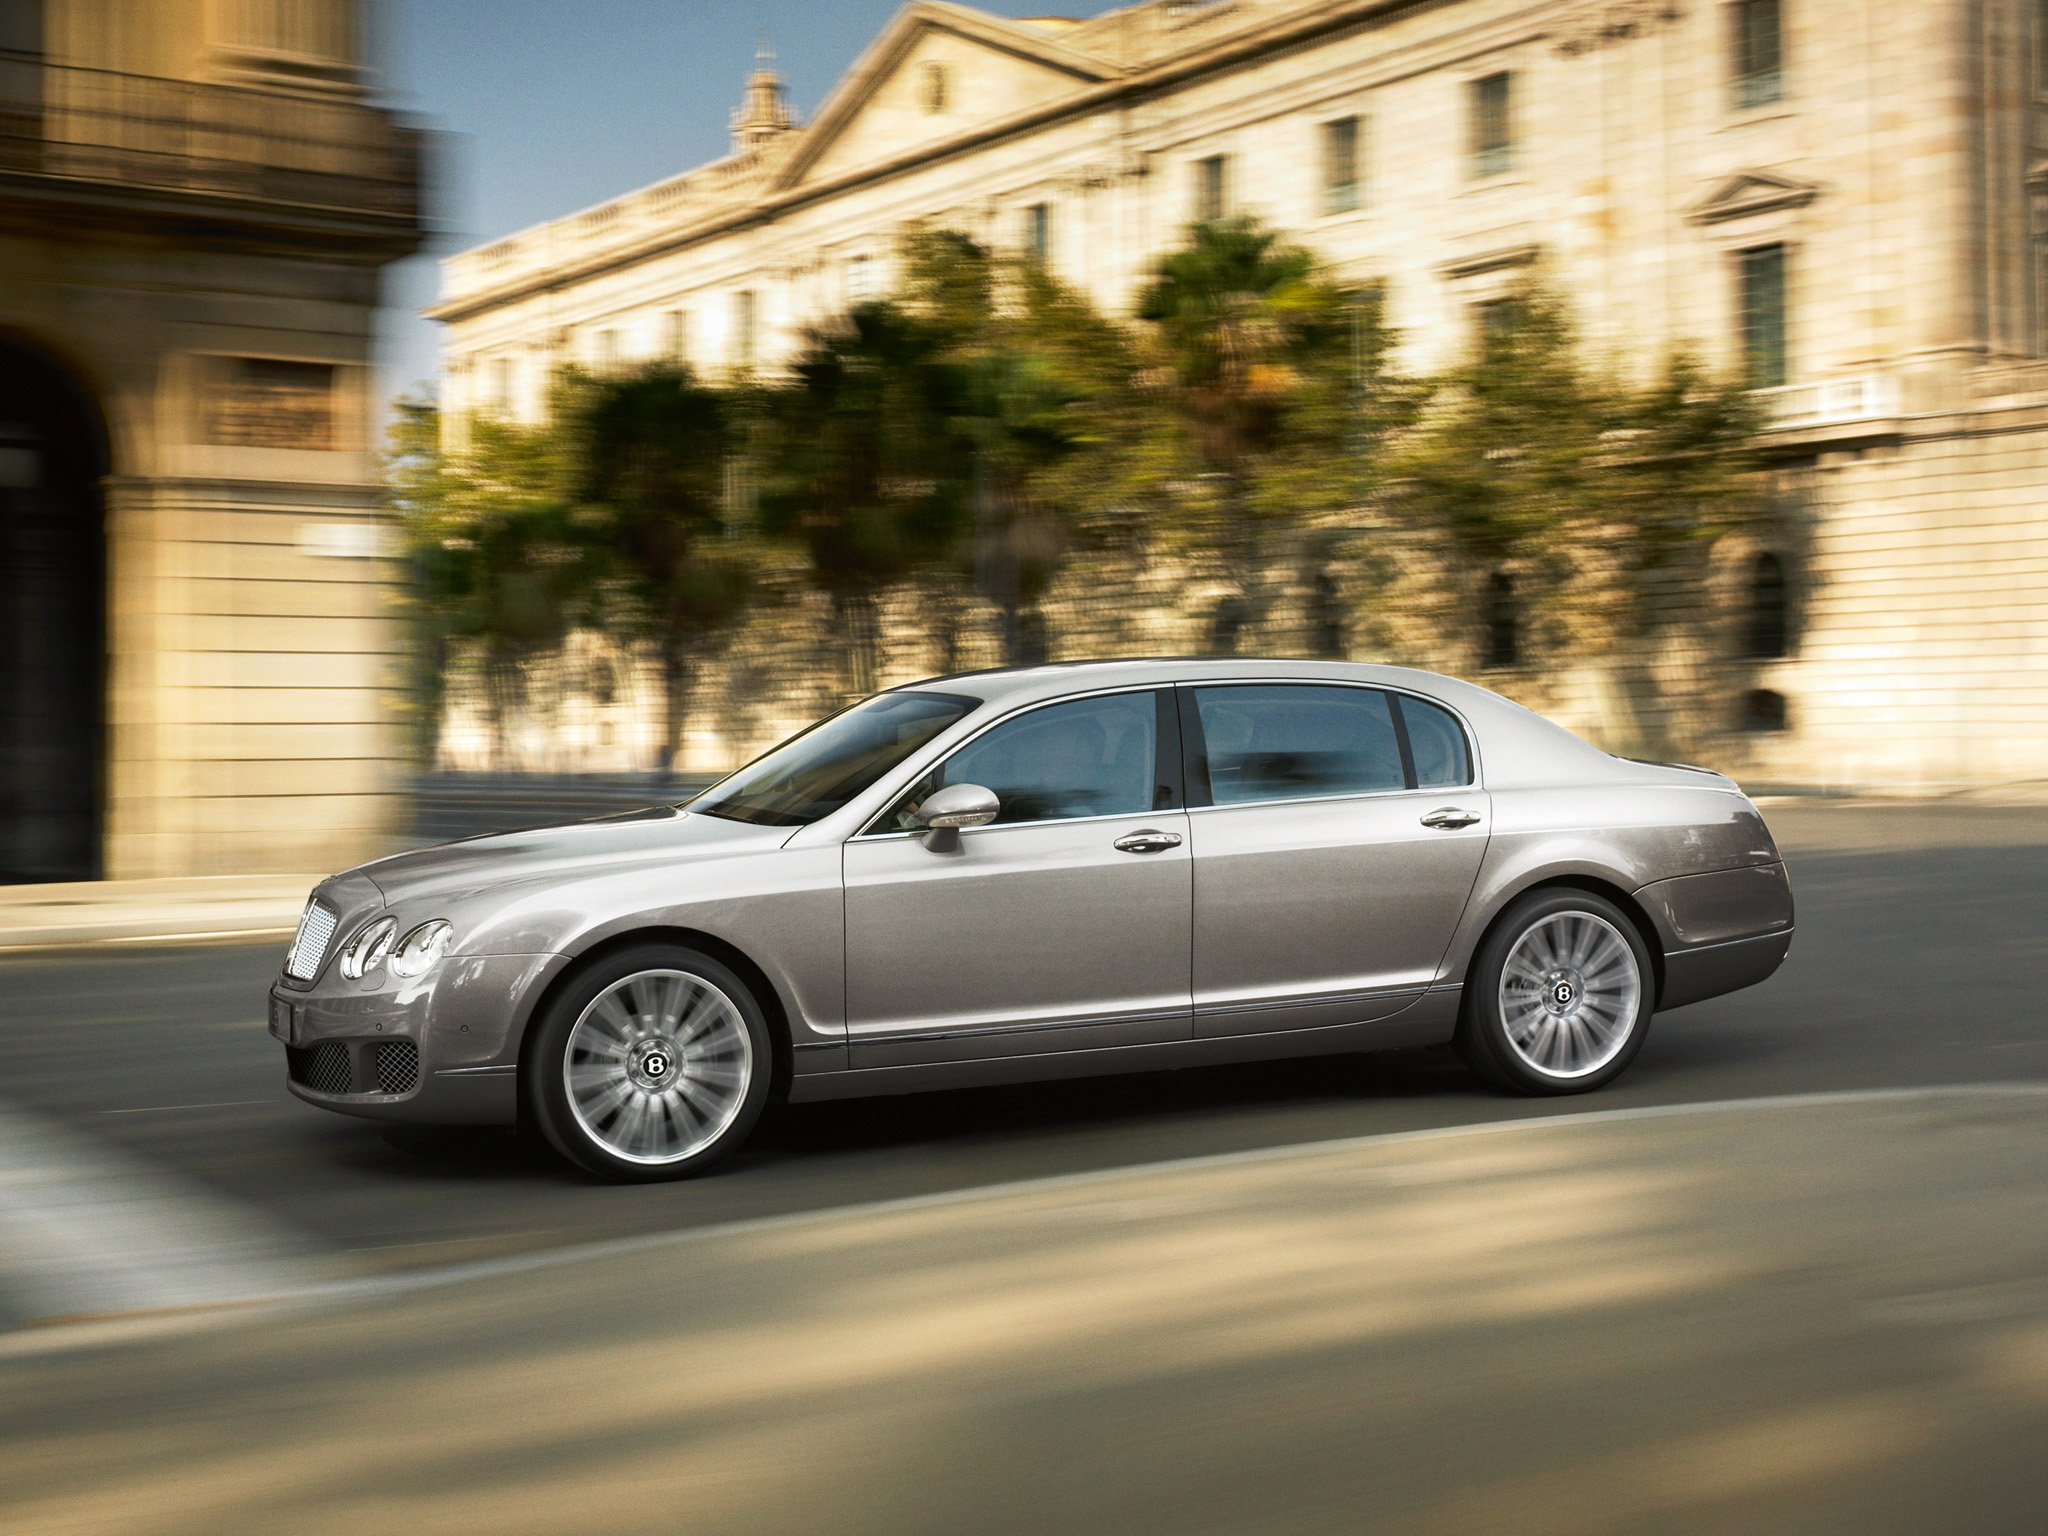 2009 Bentley Continental Flying Spur Speed #13